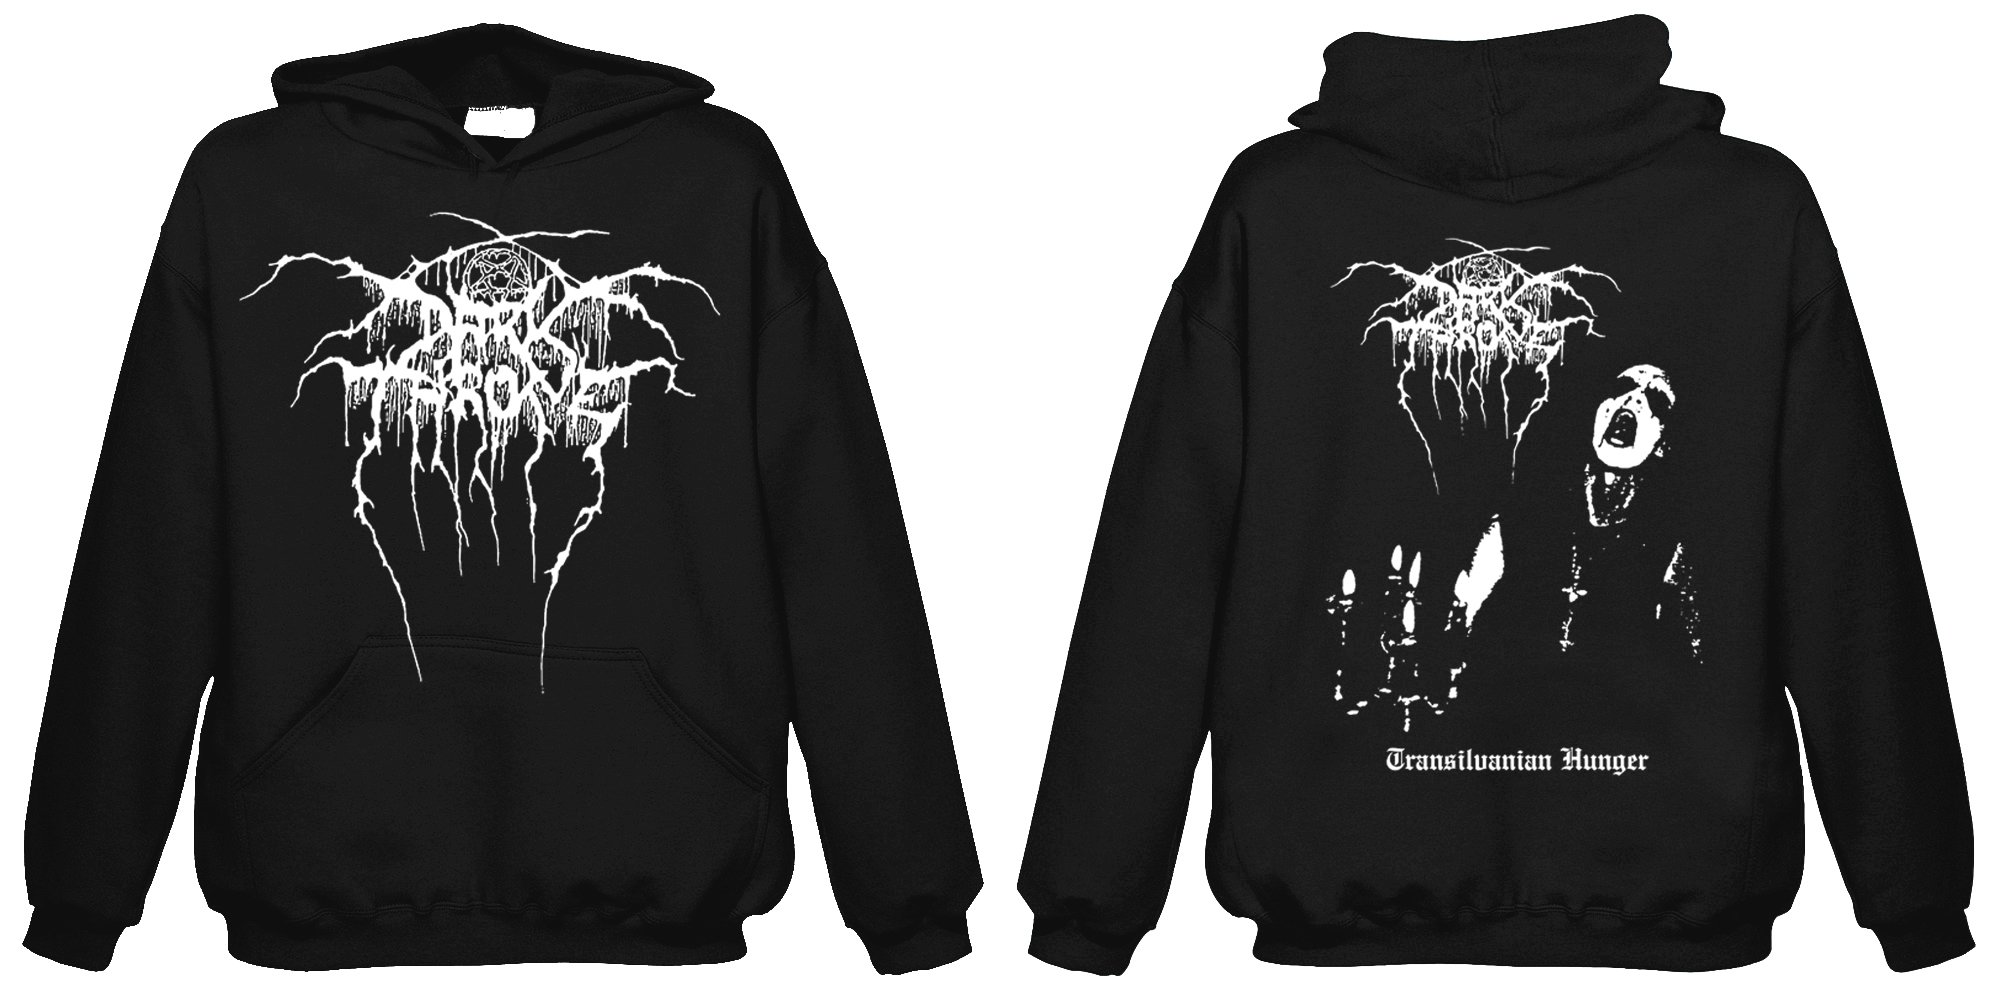 Darkthrone-Transilvanian Hunger  (Hooded Sweatshirt)